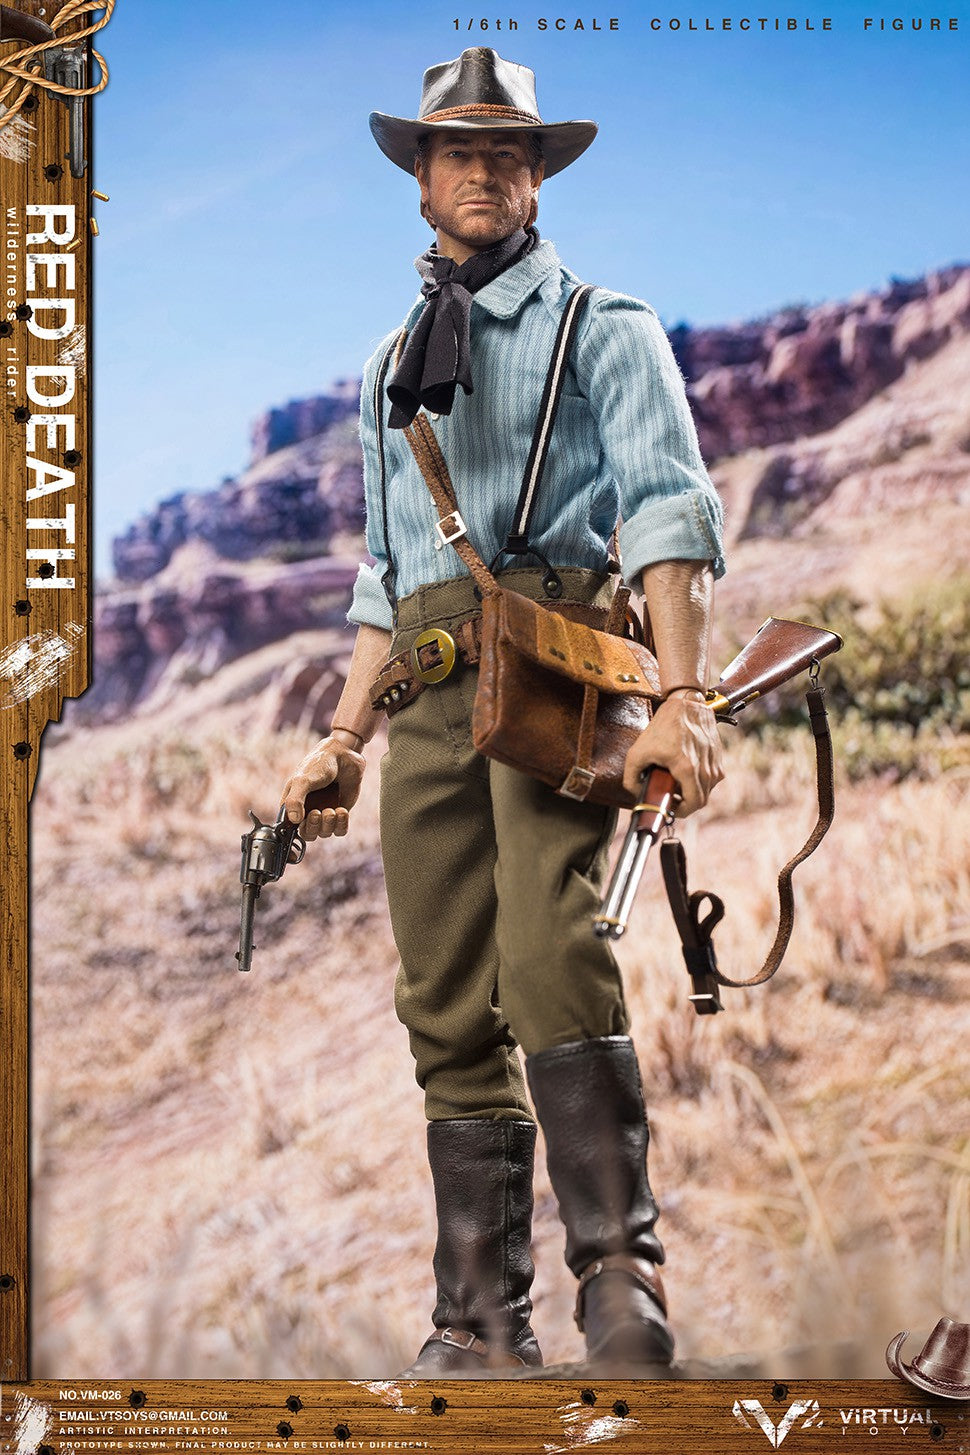 WILDERNESS RIDER: RED DEATH: VM-026: VTS TOYS: SIXTH SCALE-(1/6) Sixth Scale-VTS TOYS